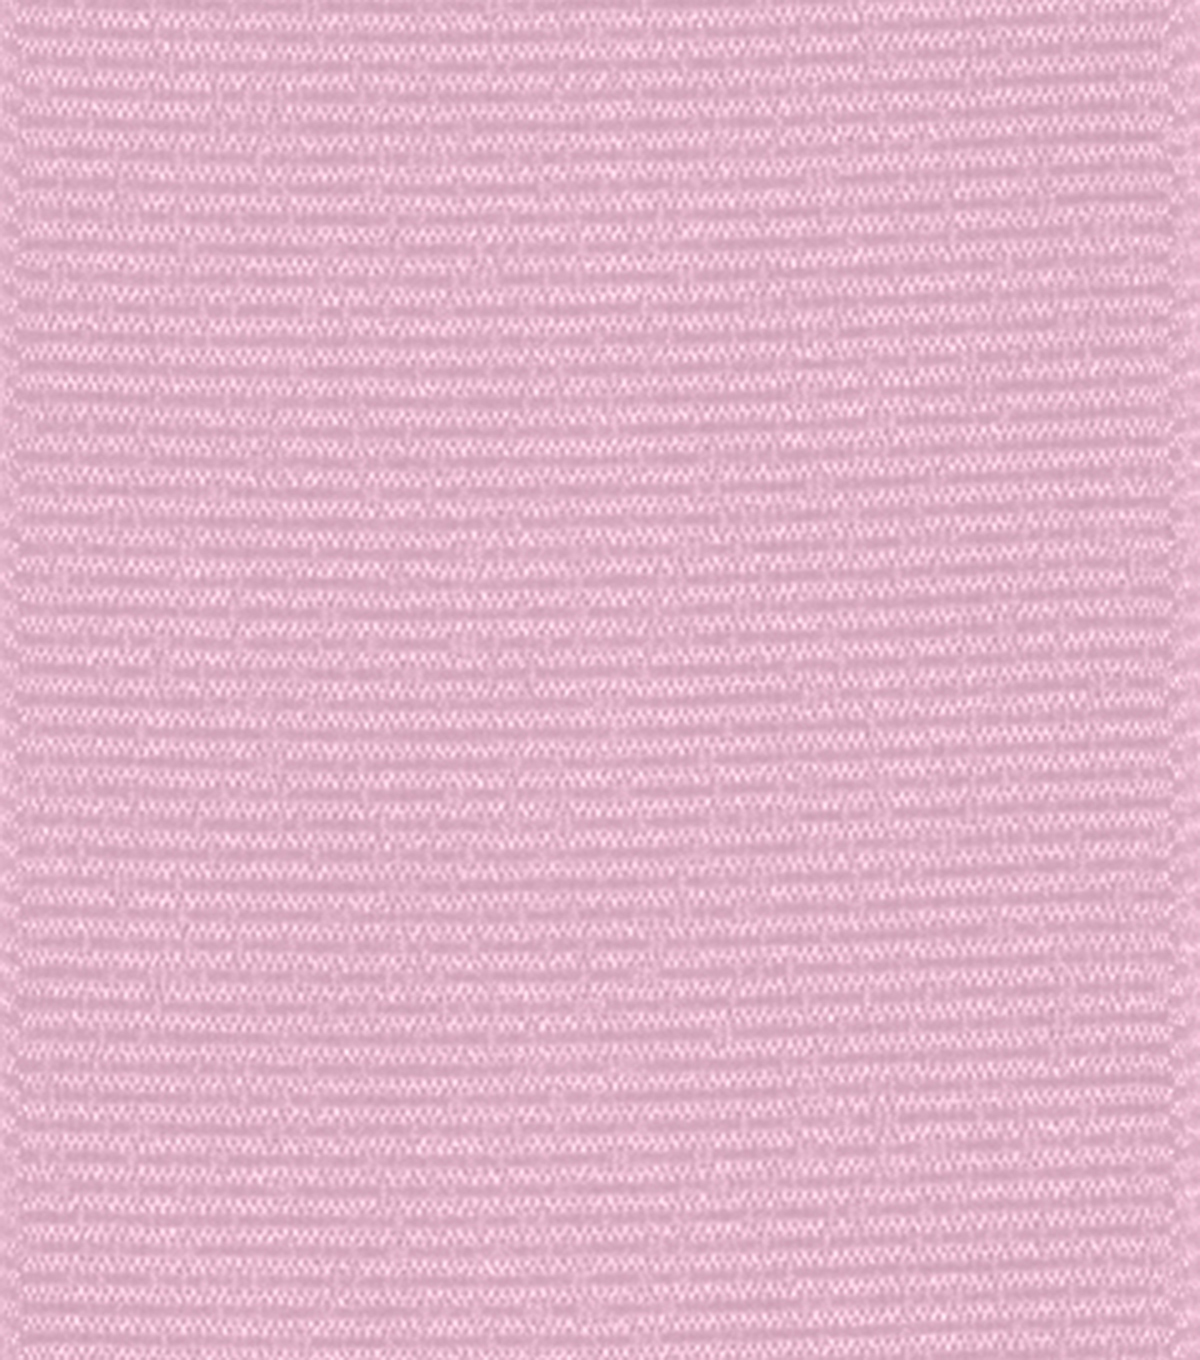 1 1/2x21 Wldorc Grosgrain Solids Gg, Wild Orchid